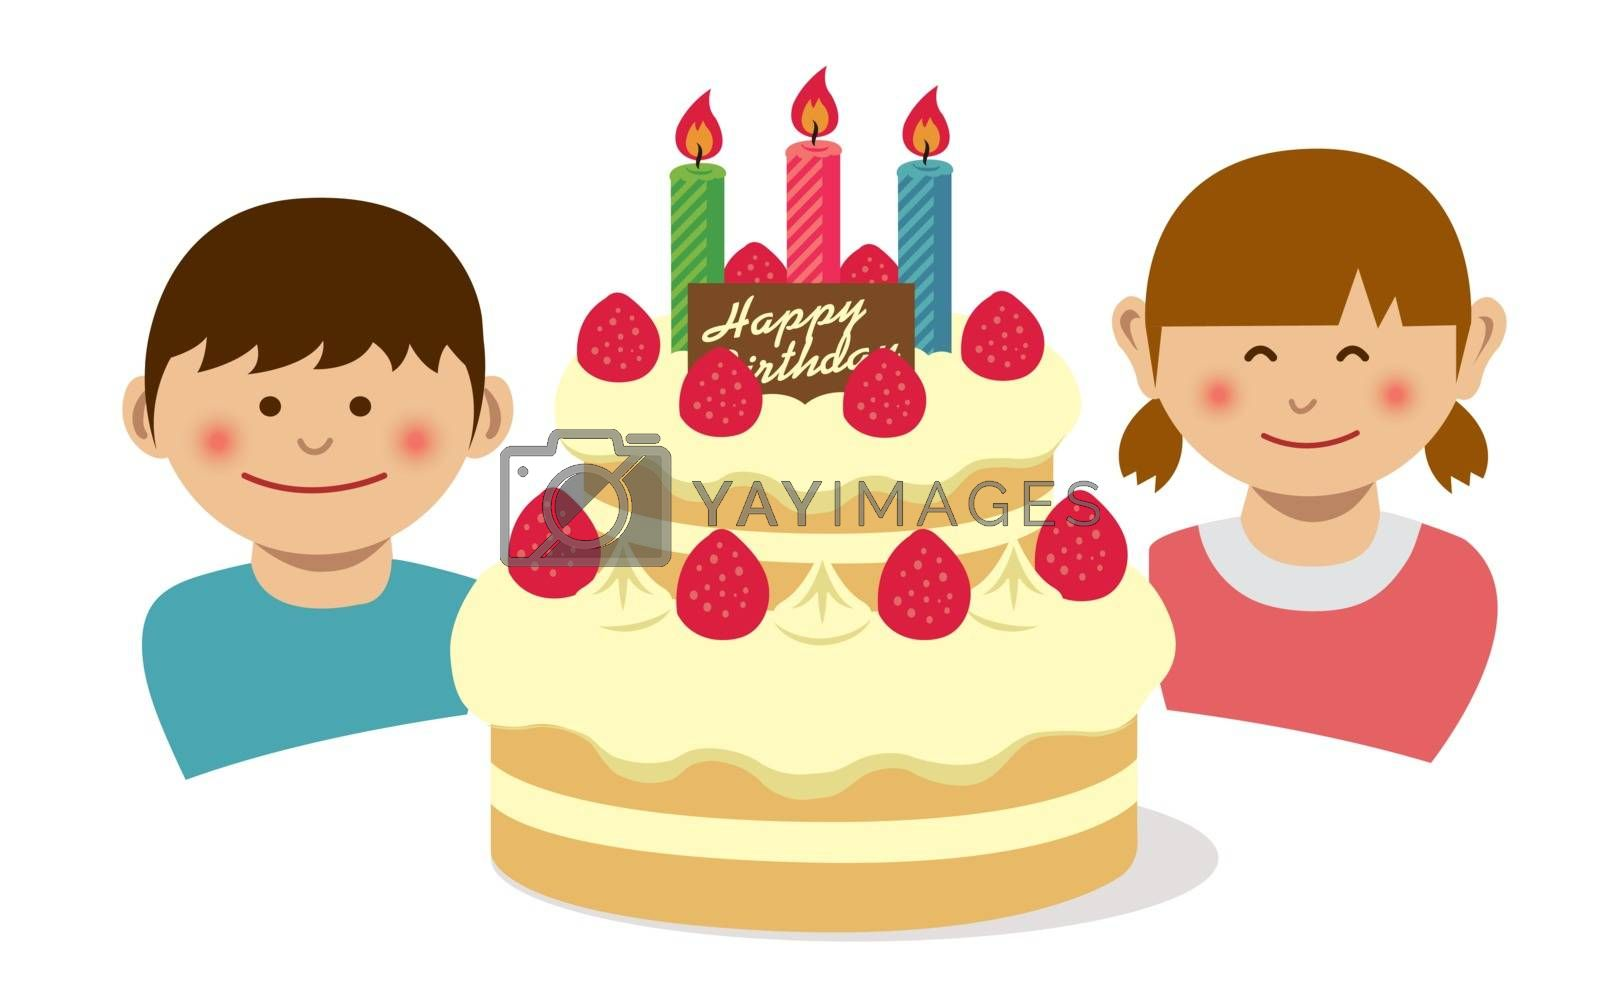 Happy birthday.Birthday cake and kids illustration. by barks